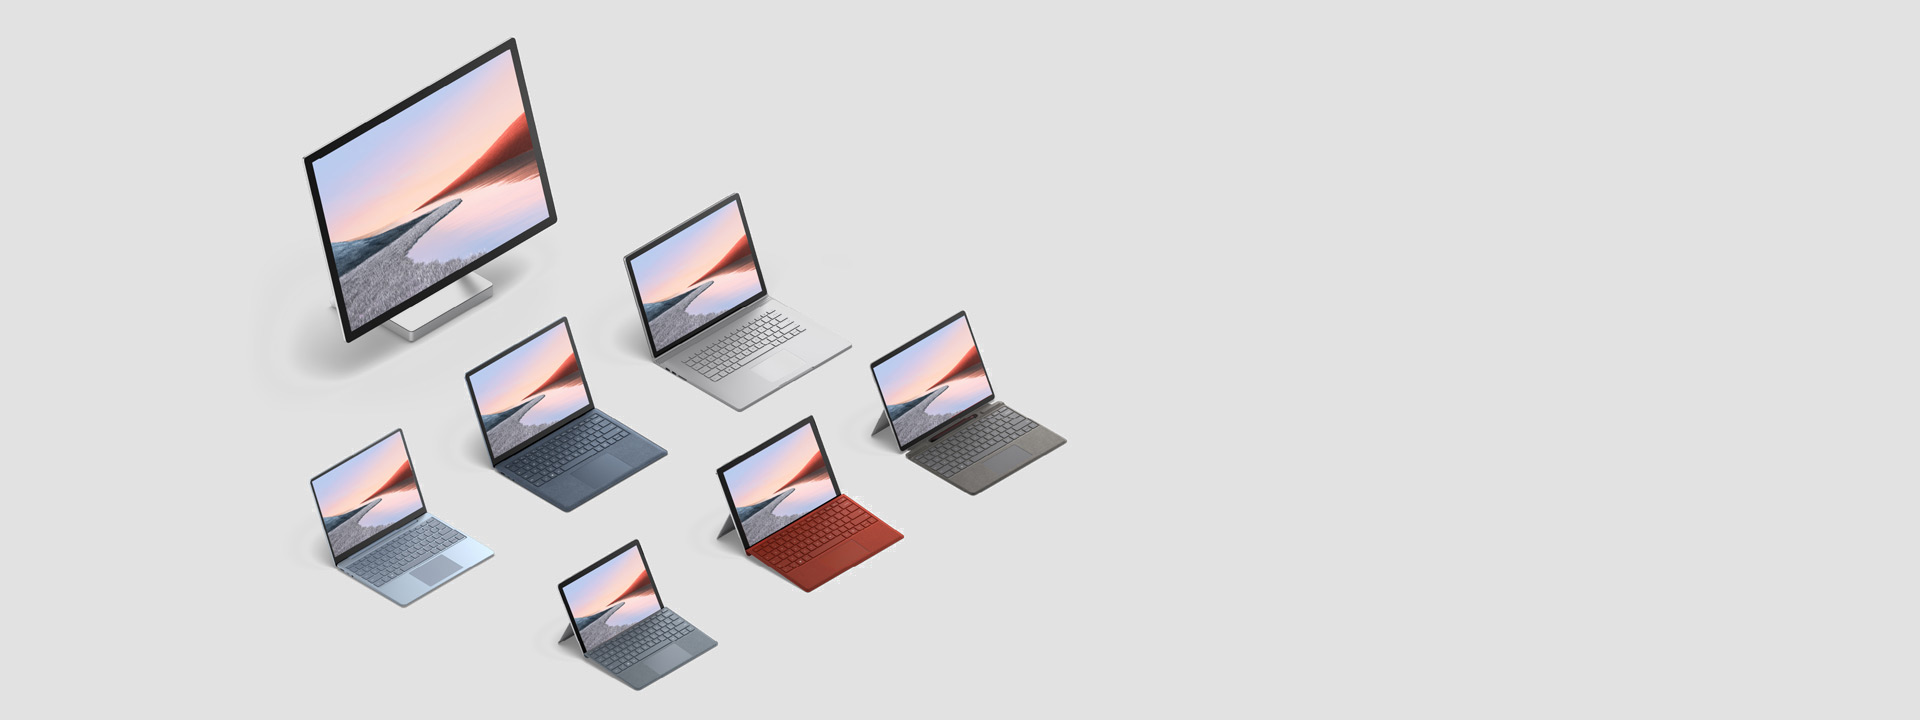 The full family of Surface devices in a variety of colours.